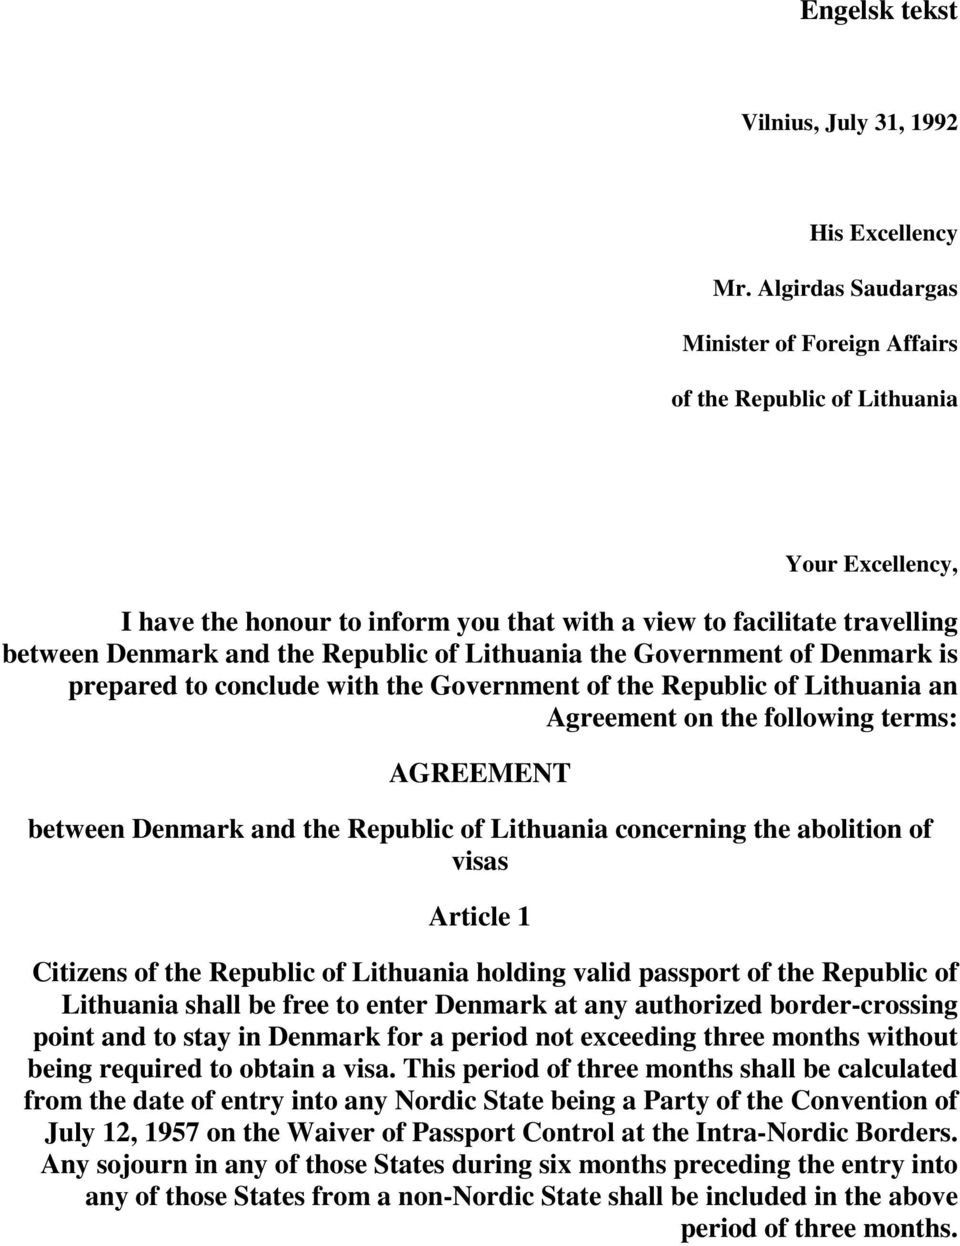 of Lithuania the Government of Denmark is prepared to conclude with the Government of the Republic of Lithuania an Agreement on the following terms: AGREEMENT between Denmark and the Republic of